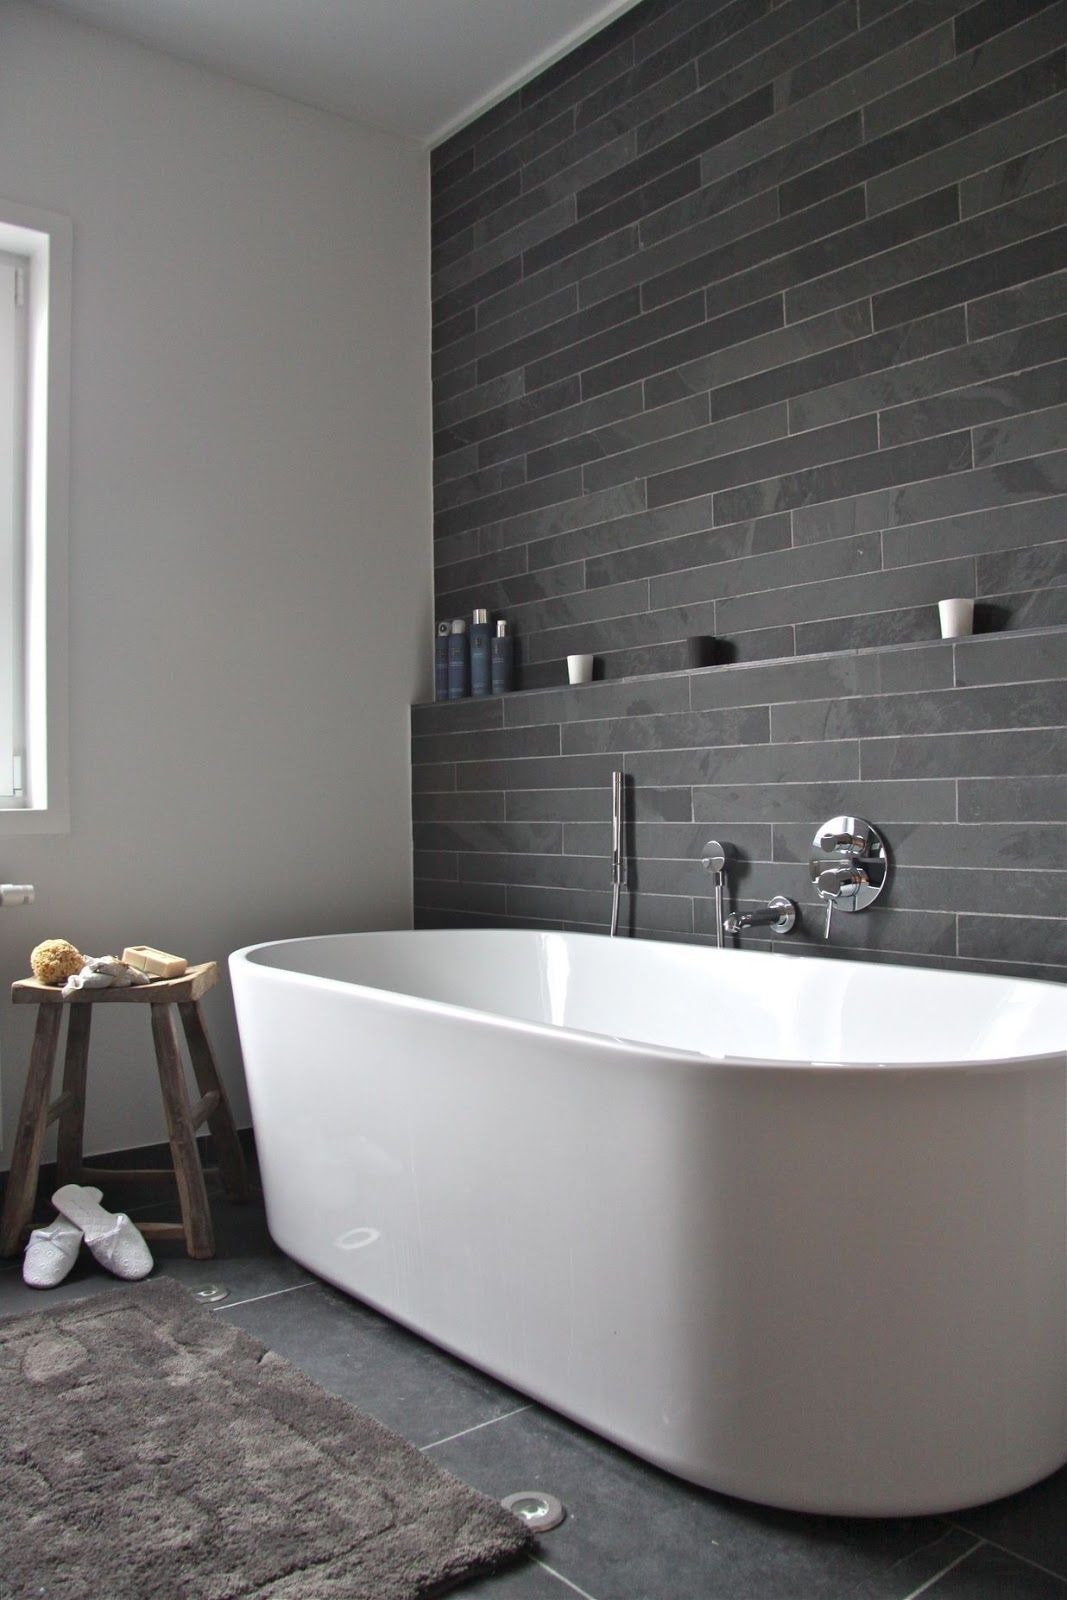 5 Beautiful Bathroom Renovation Ideas Modern TileDesign BathroomModern BathroomsGrey Slate BathroomMaster